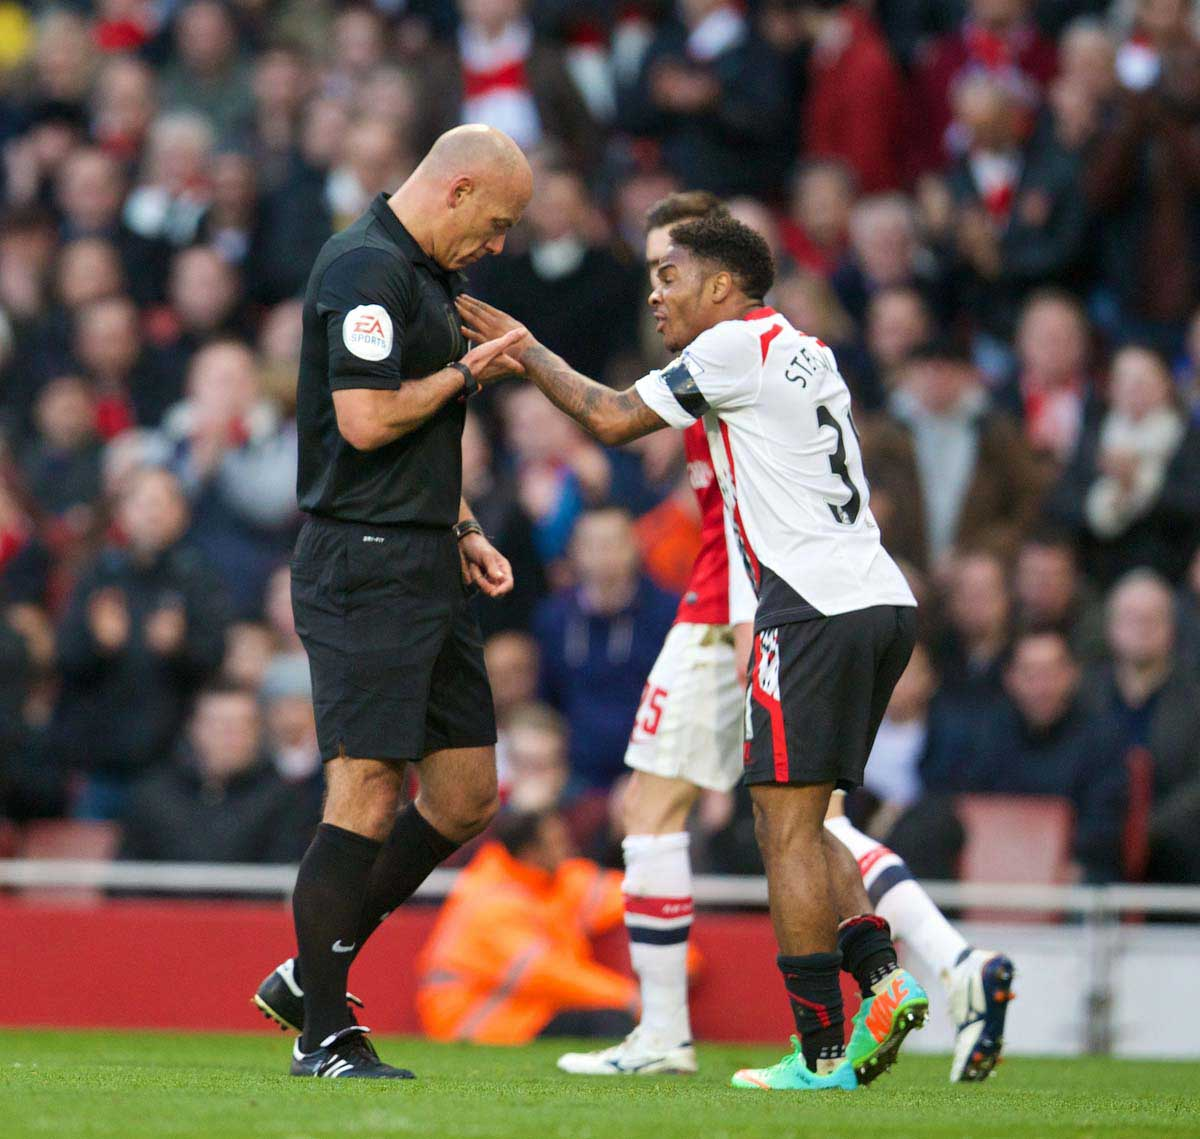 THAT REFEREES FAVOUR SMALLER PLAYERS IS NO TALL STORY